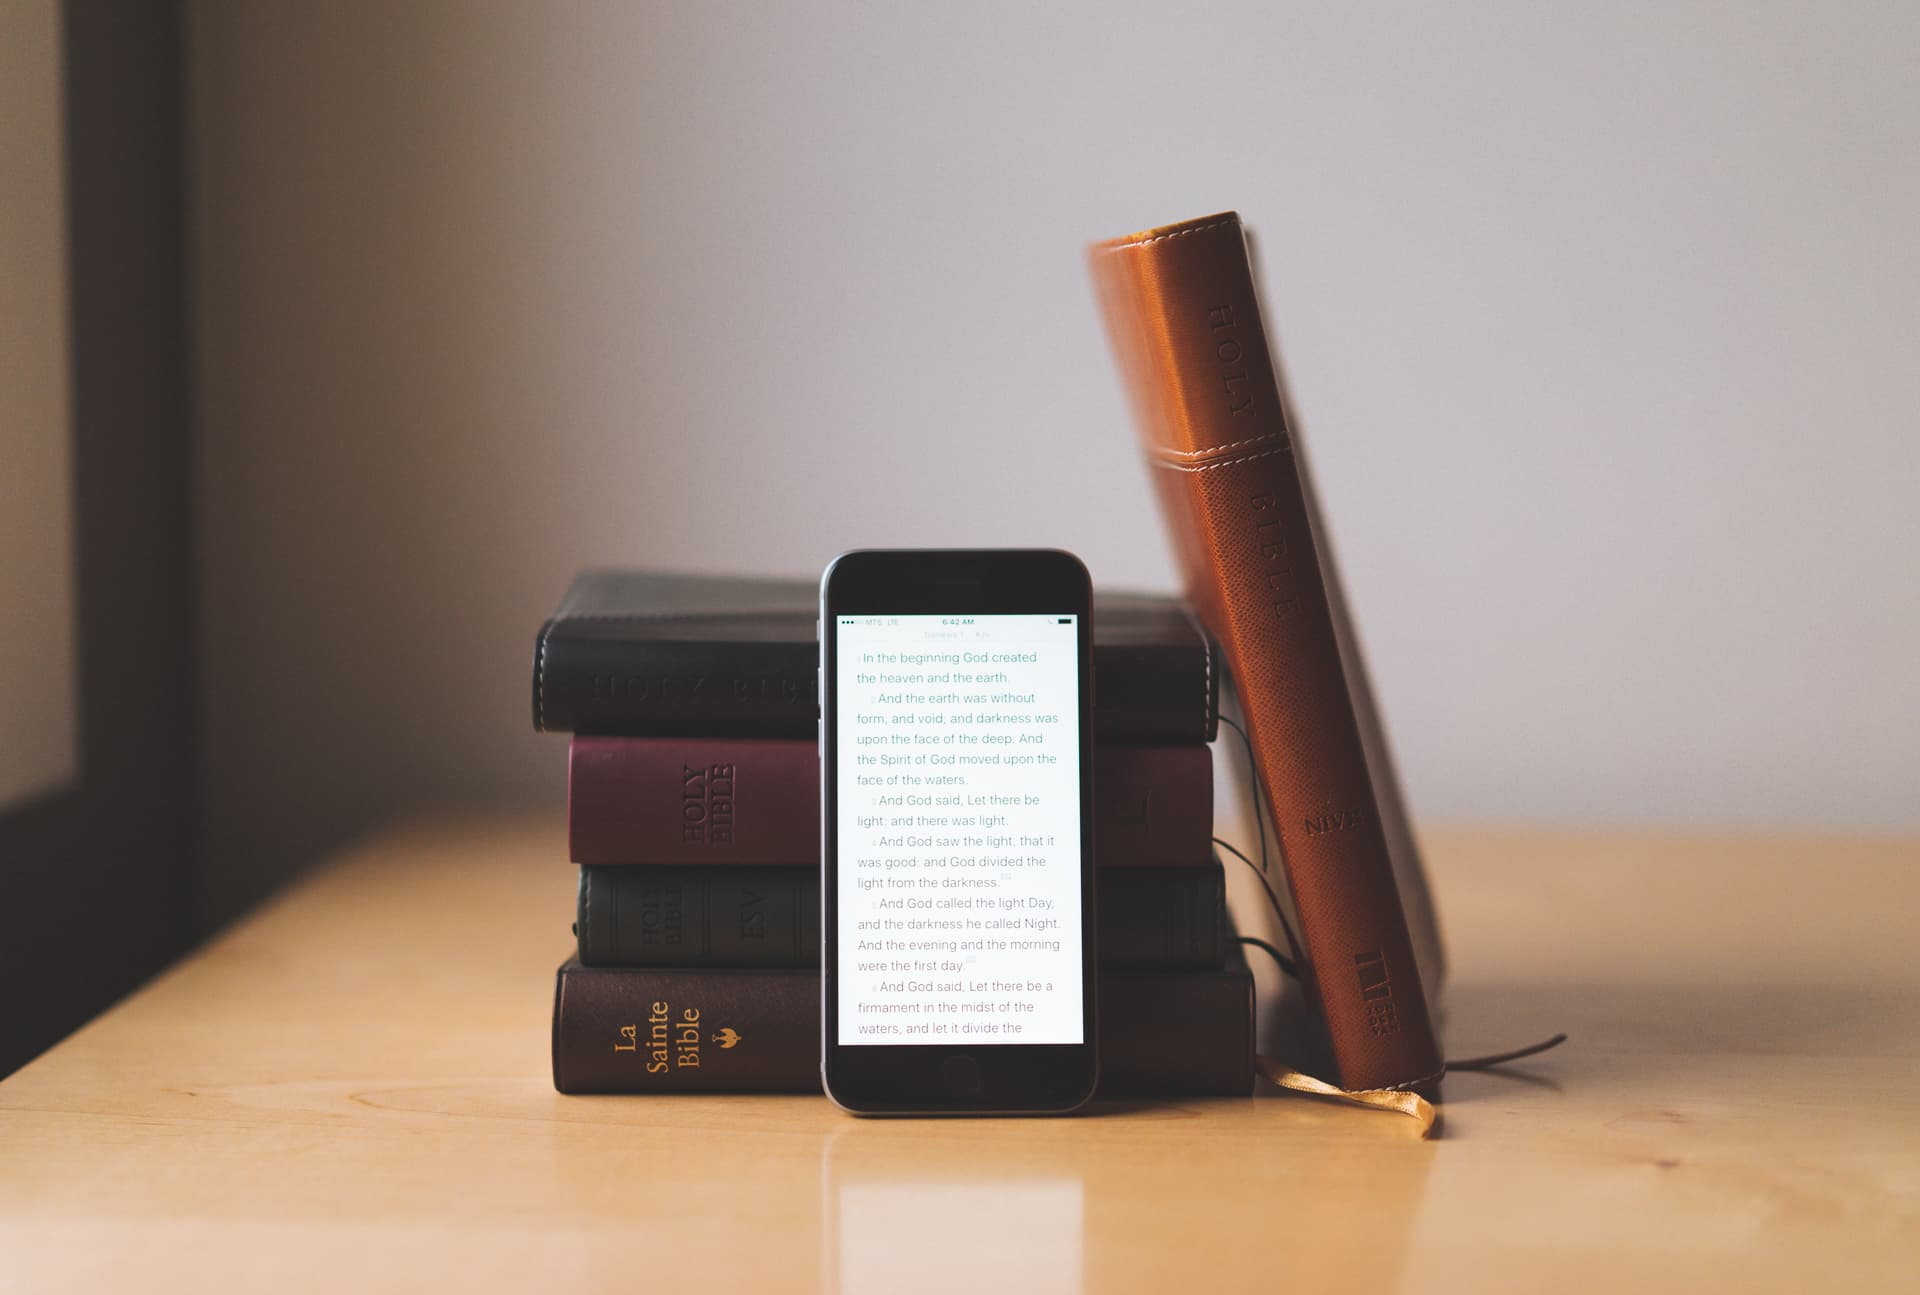 the best bible app for iphone and ipad u2014 the sweet setup